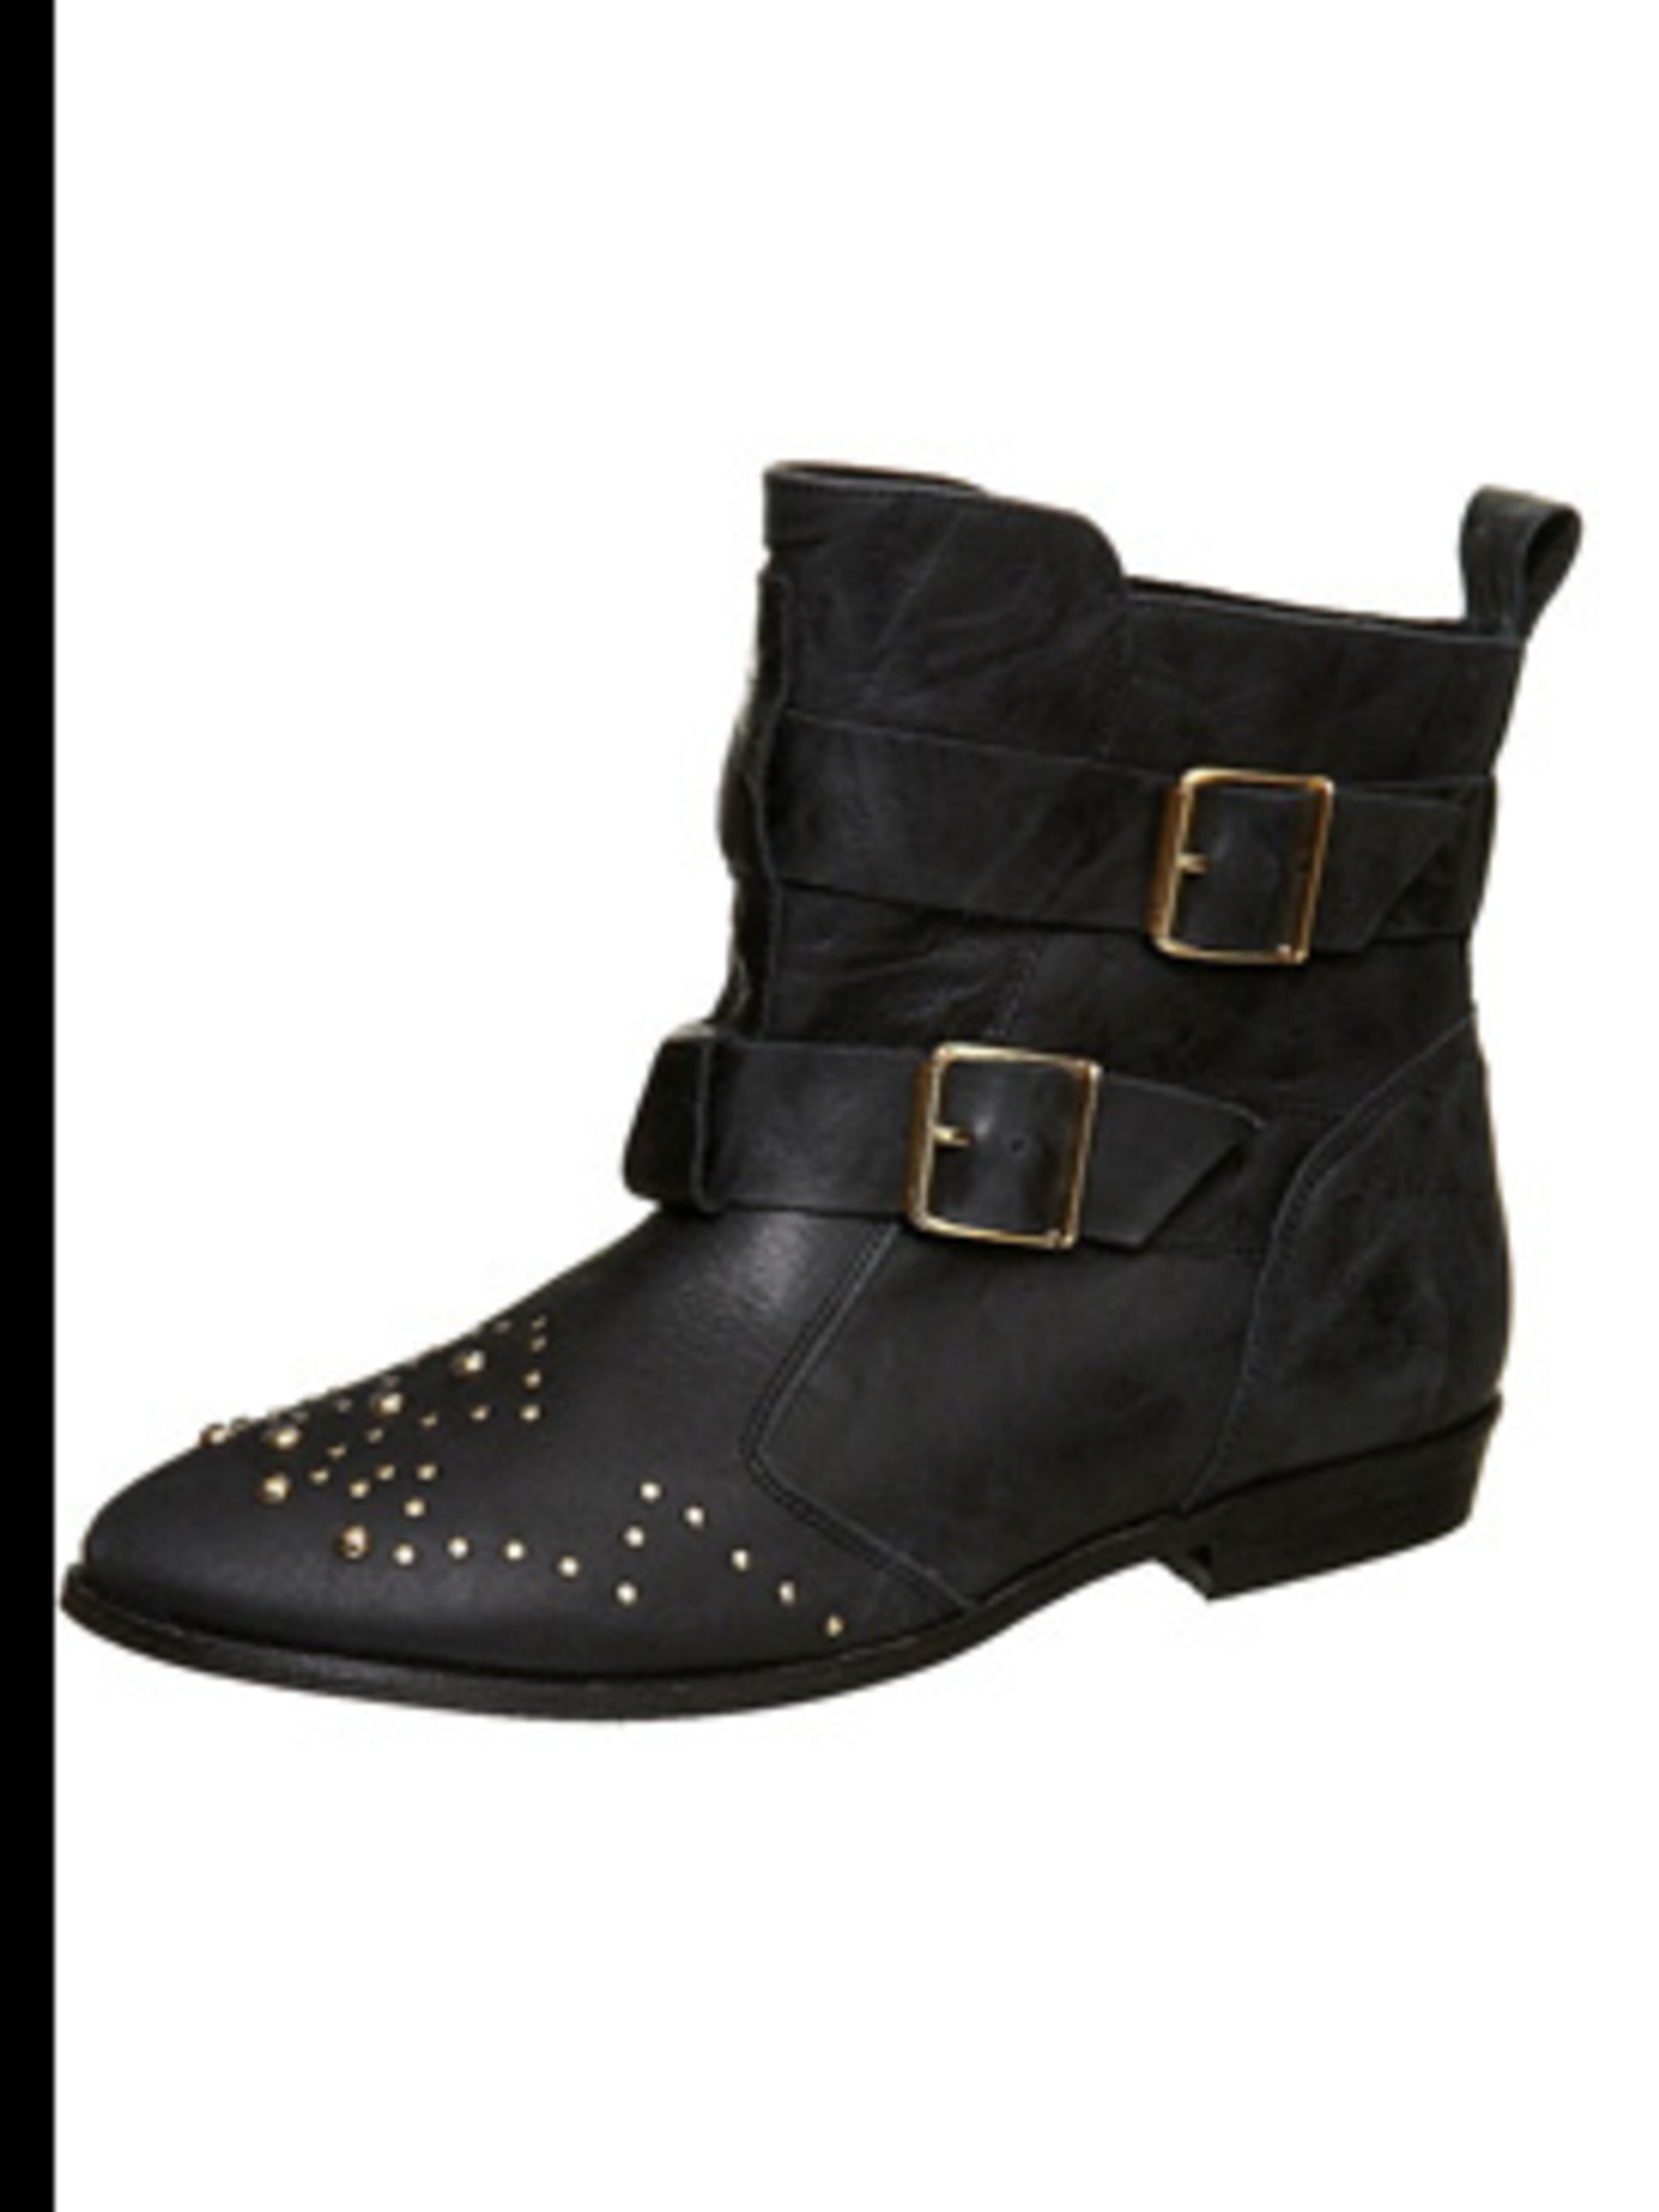 "<p>Black studded boots, £75, by <a href=""http://www.topshop.com/webapp/wcs/stores/servlet/ProductDisplay?beginIndex=0&viewAllFlag=&catalogId=19551&storeId=12556&categoryId=73929&parent_category_rn=42358&productId=1043489&langId"